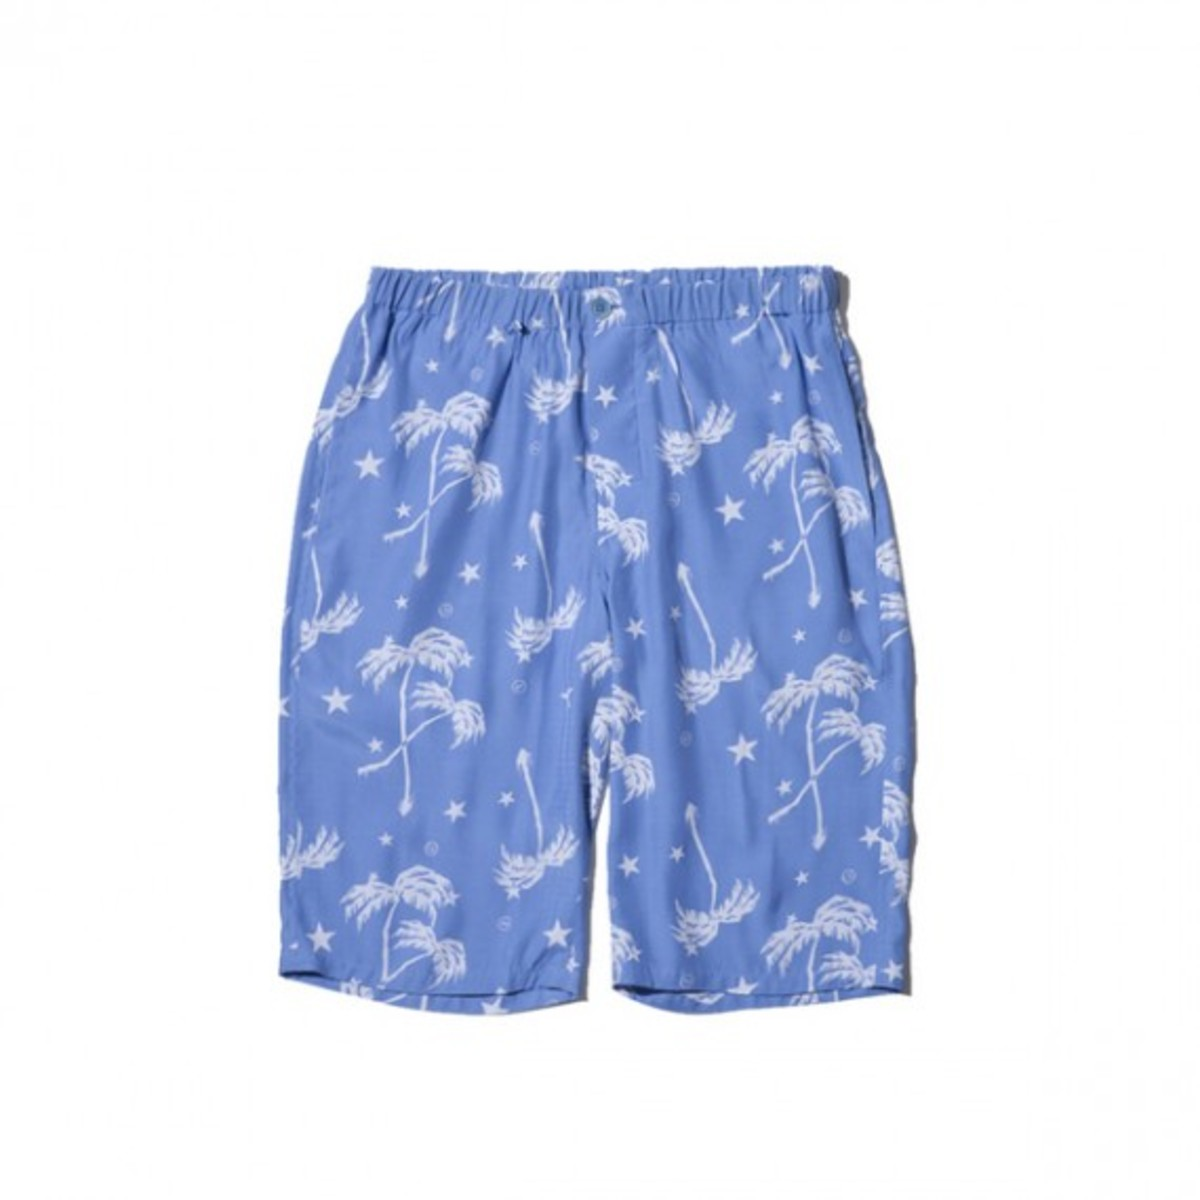 Rayon Spring Summer Palm Tree Easy Shorts